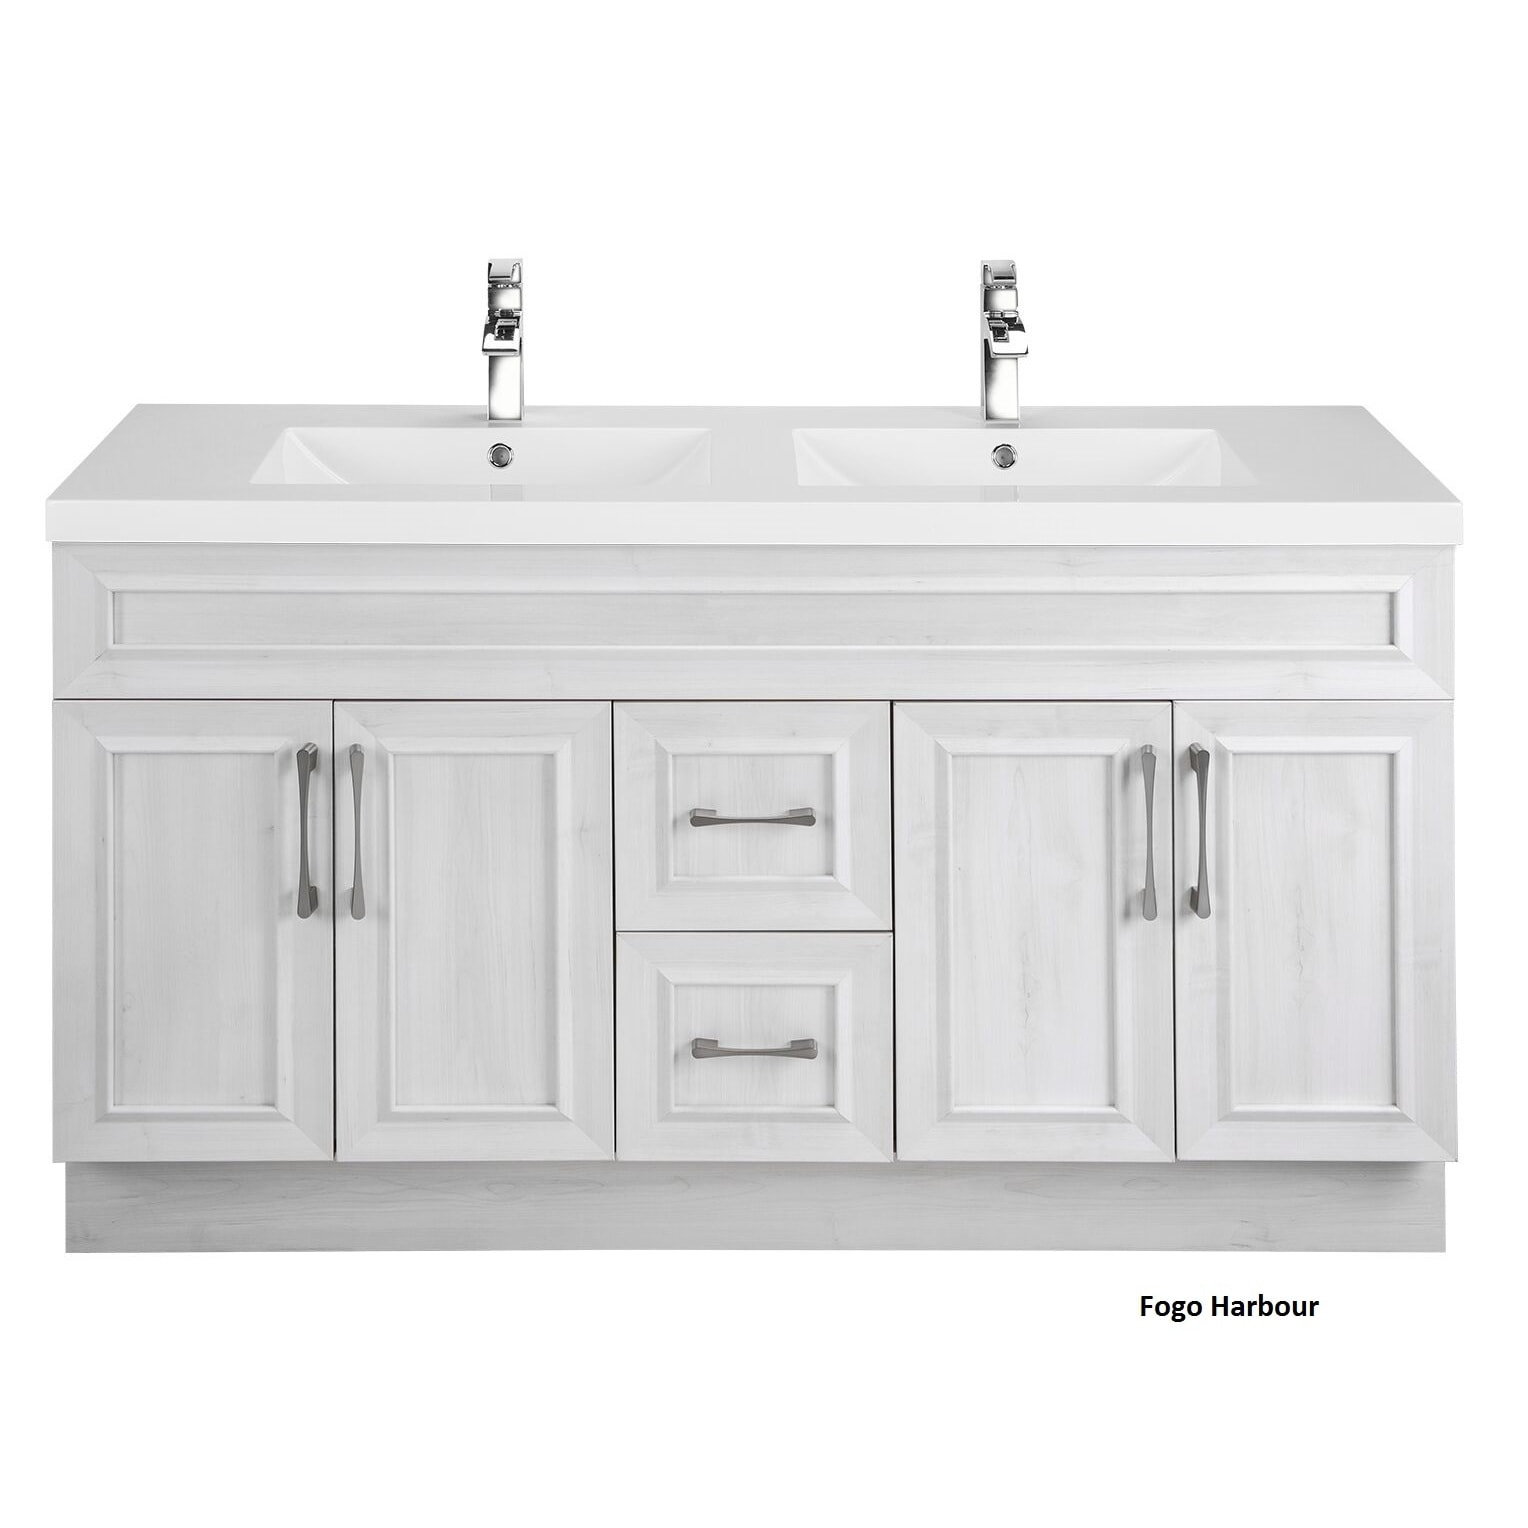 textures inspirational and white cutler bathroom bath vanity cabinets collectio chocolate collection contemporary kitchen